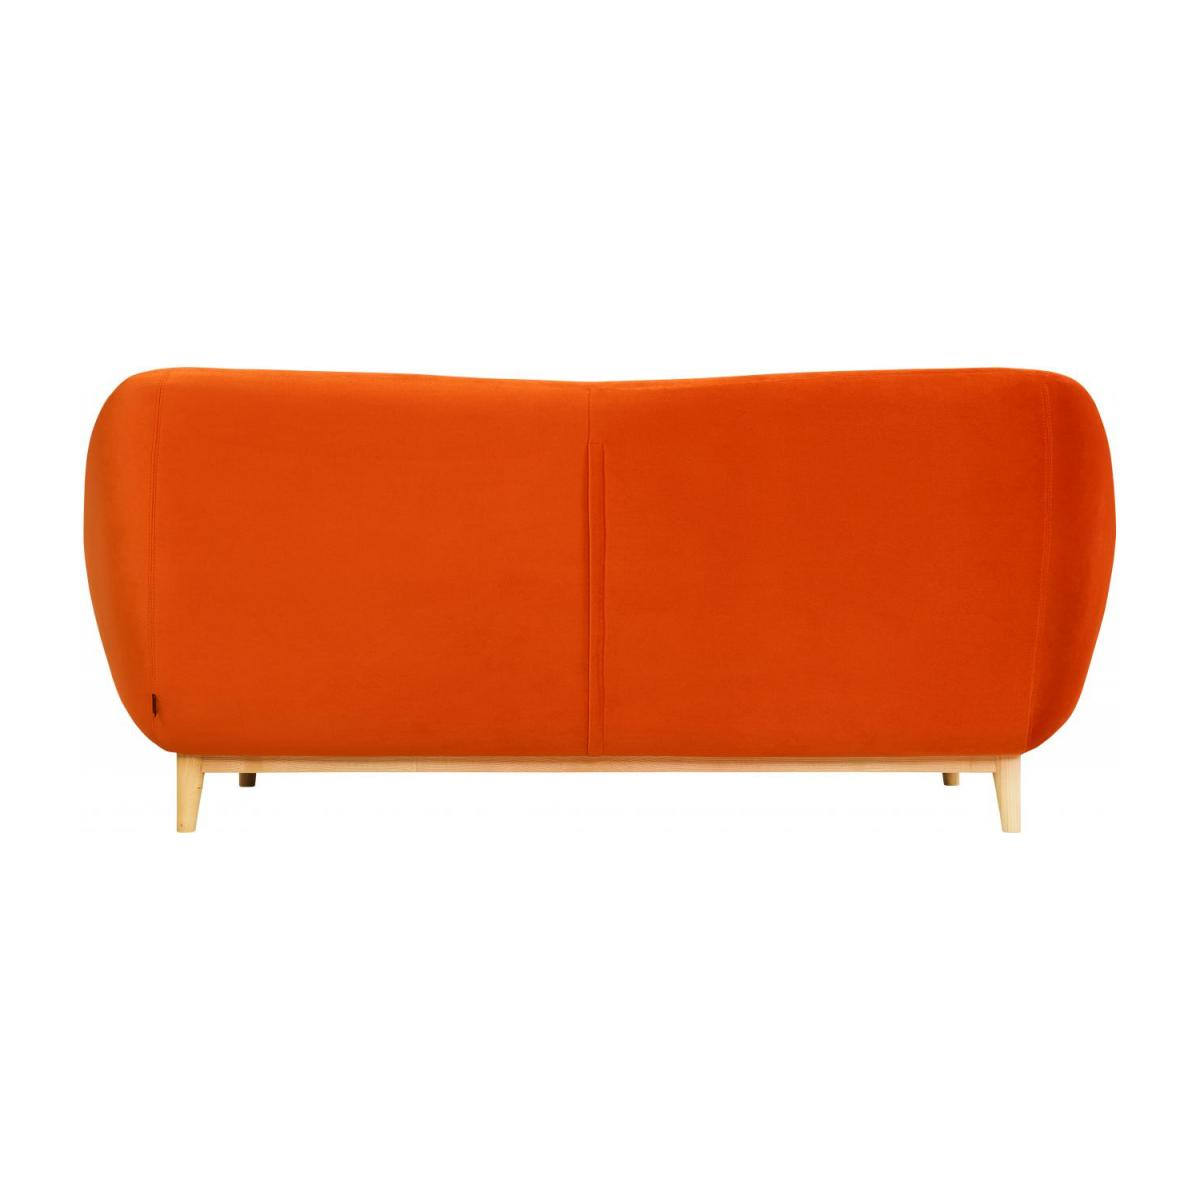 3-Sitzer-Sofa aus Samt - Orange - Design by Adrien Carvès n°4